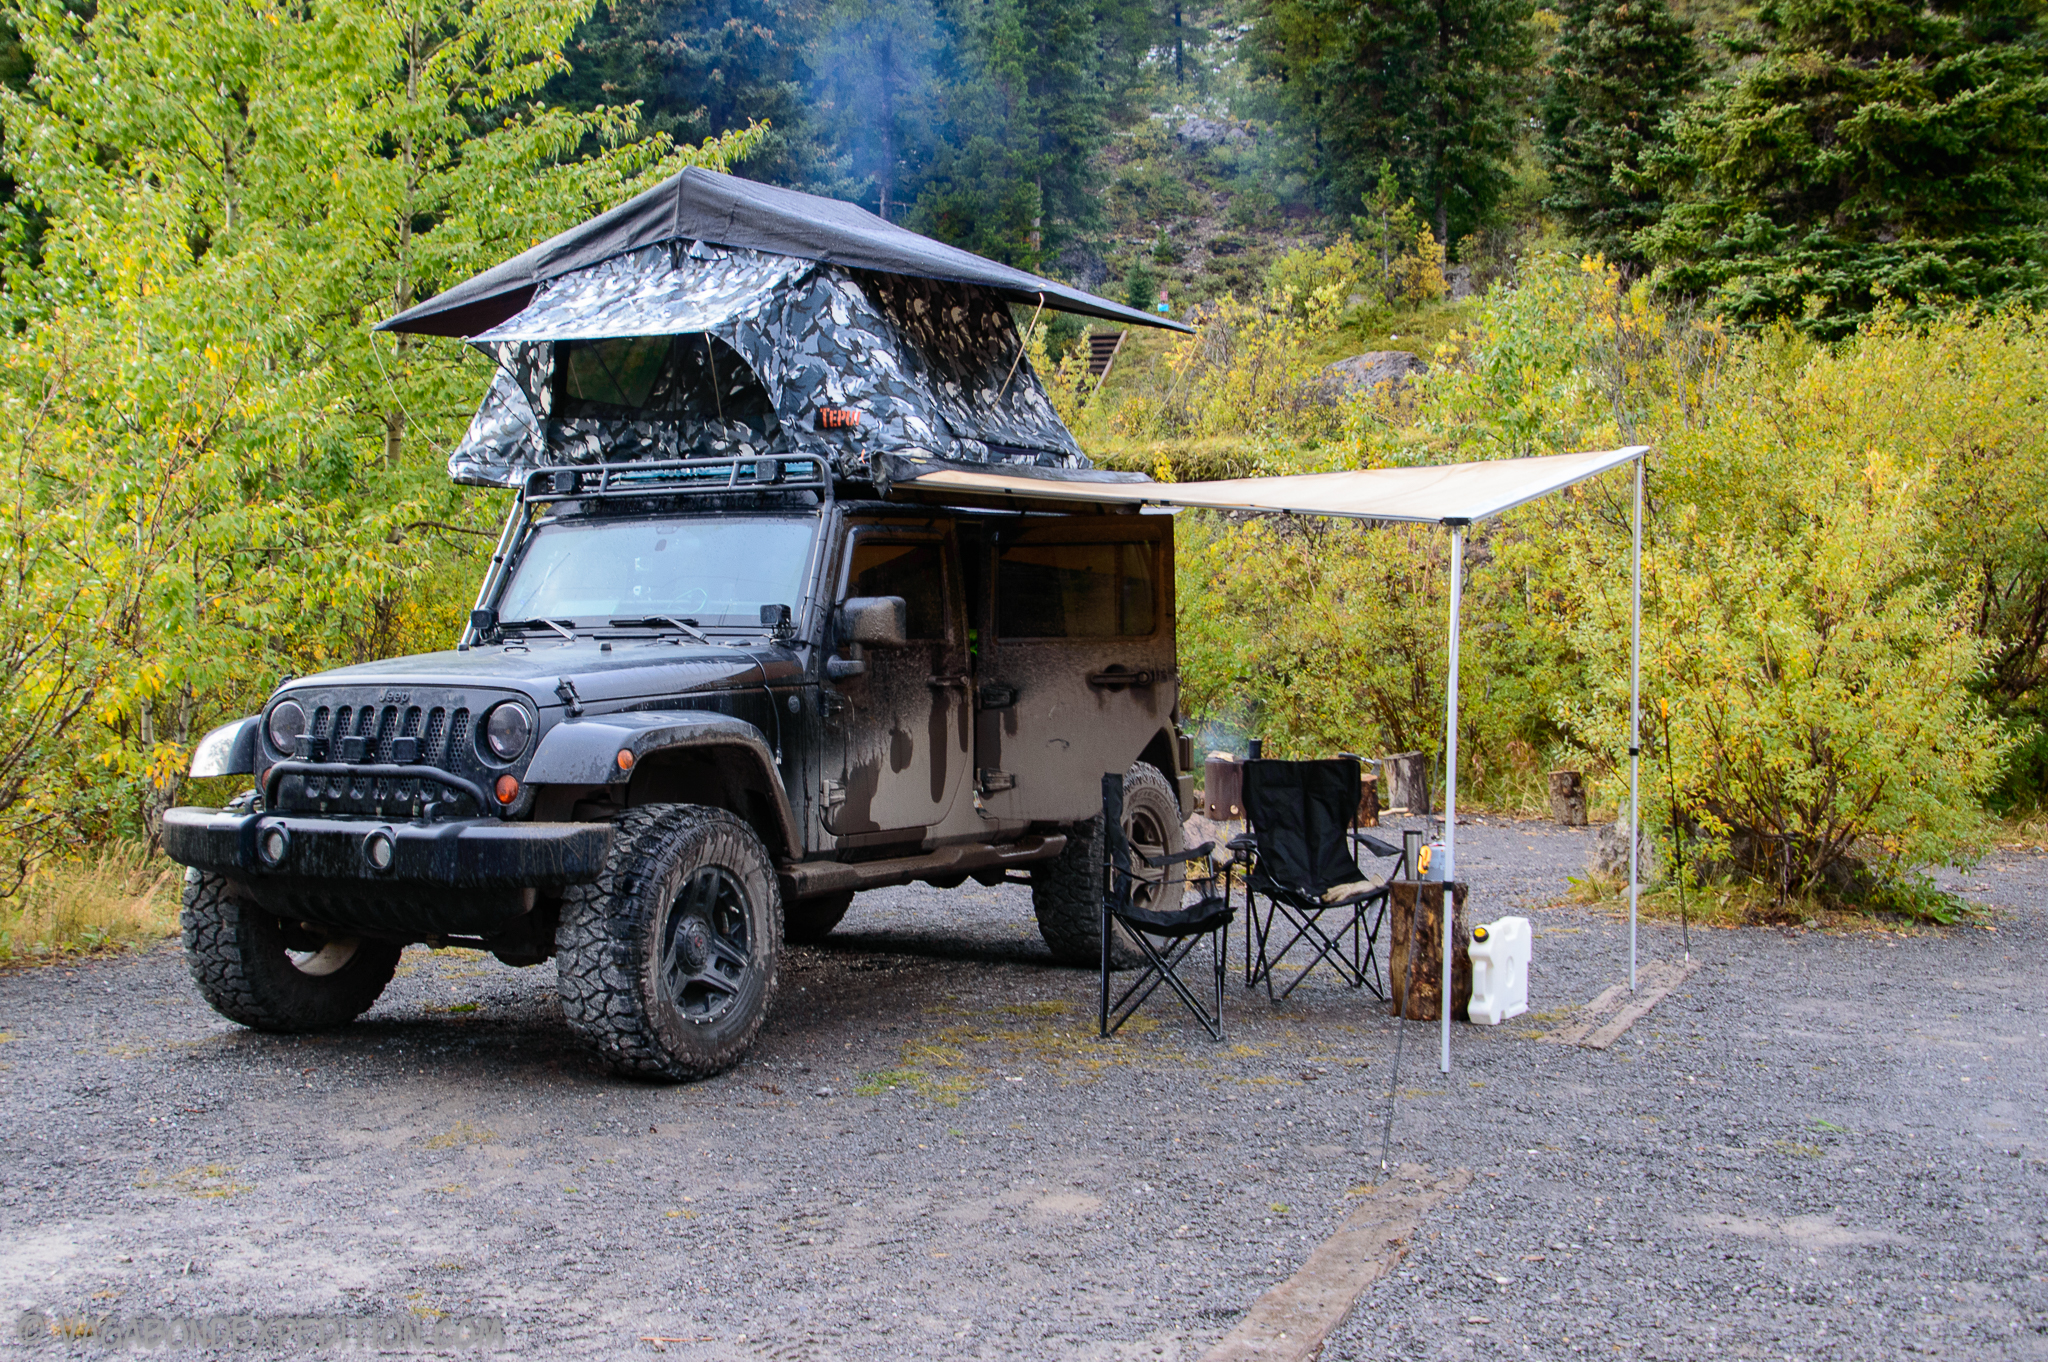 the Jeep Wrangler and Smitybuilt Awning